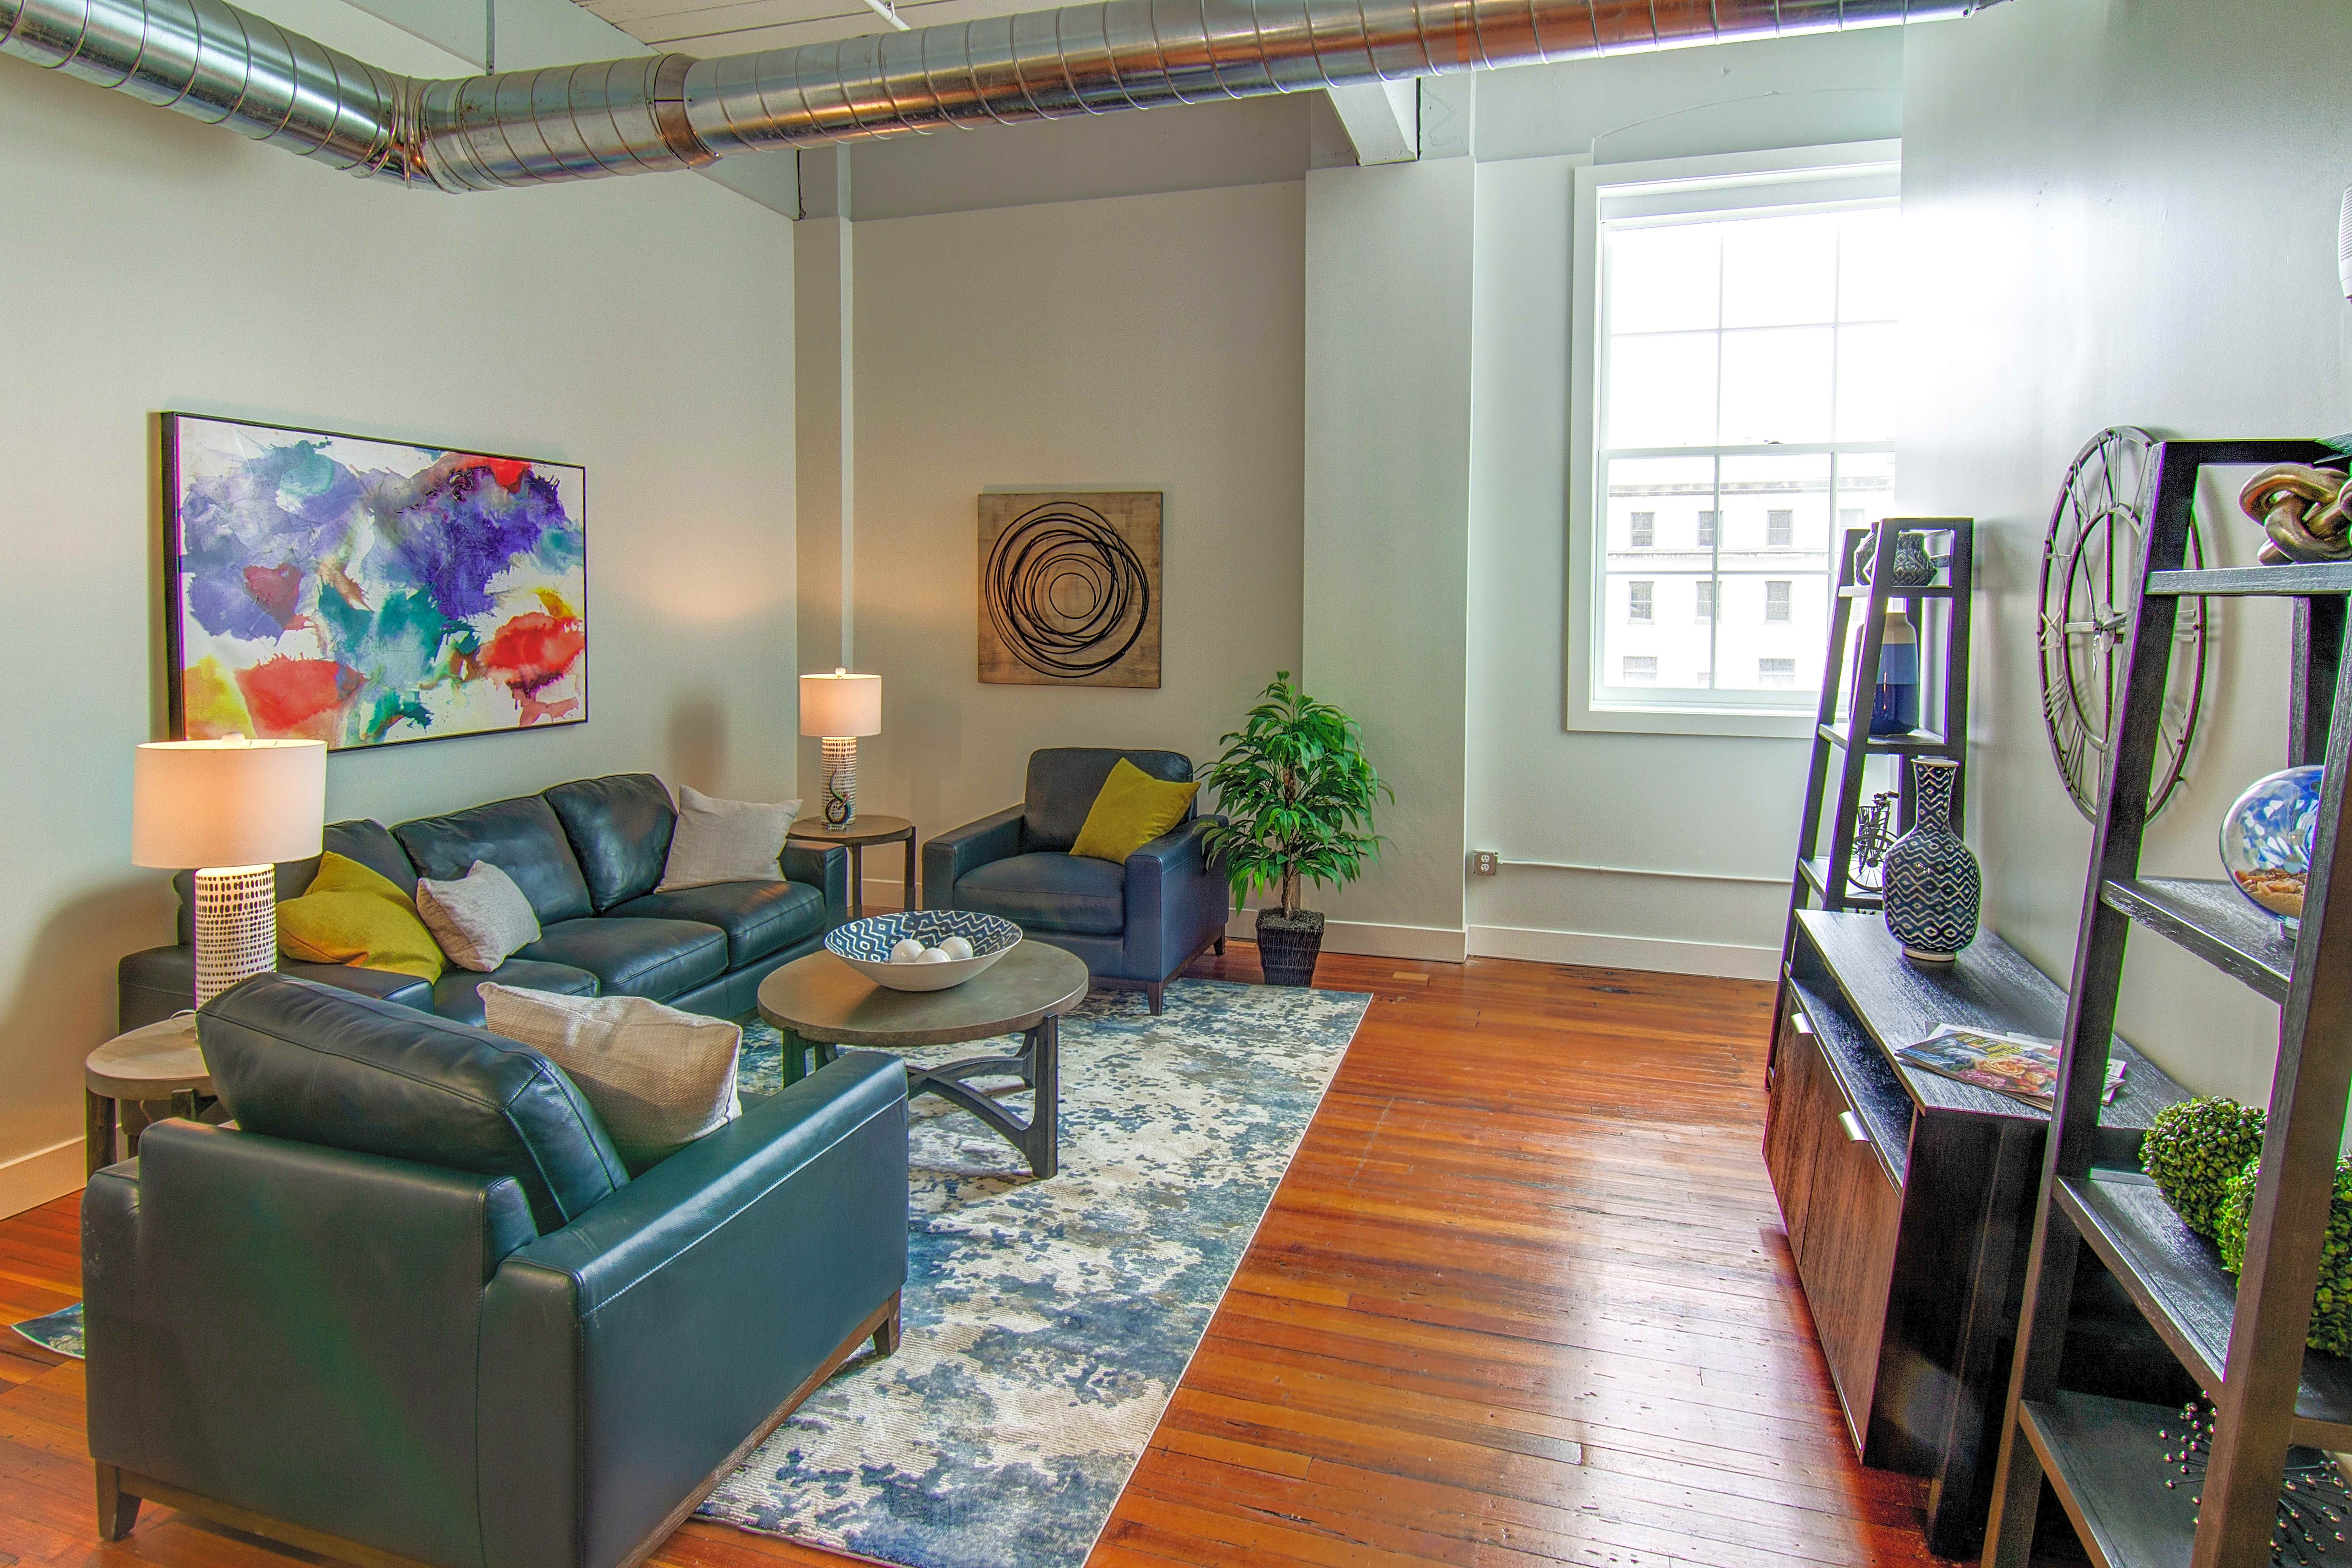 Apartments Near SUNYIT Rathbun Lofts for SUNY Institute of Technology Students in Utica, NY